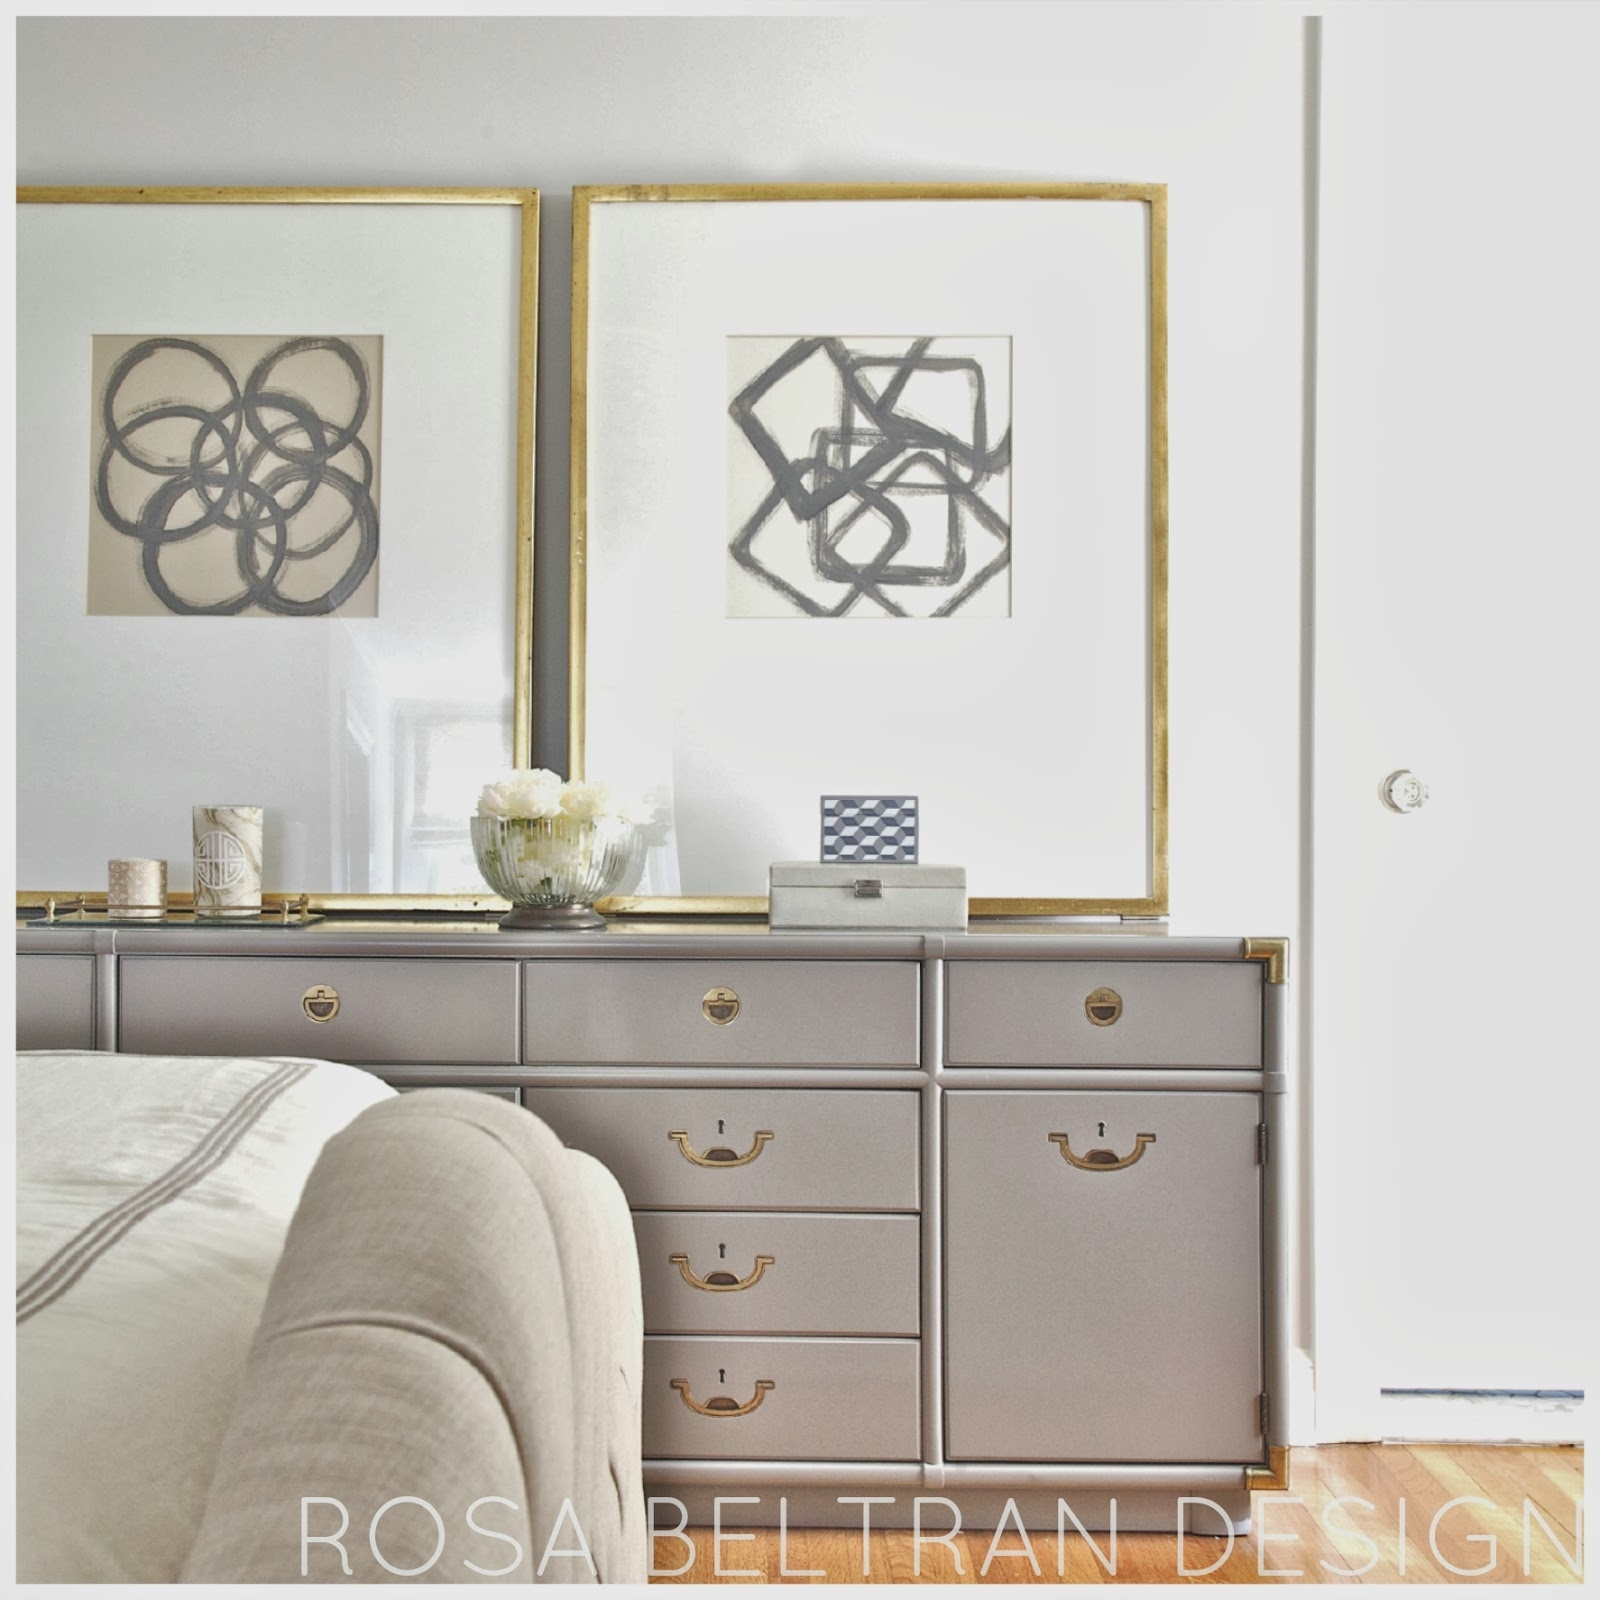 Rosa Beltran Design: Diy Wall Art Series: Modern Abstracts Throughout Most Recently Released Diy Abstract Wall Art (Gallery 20 of 20)